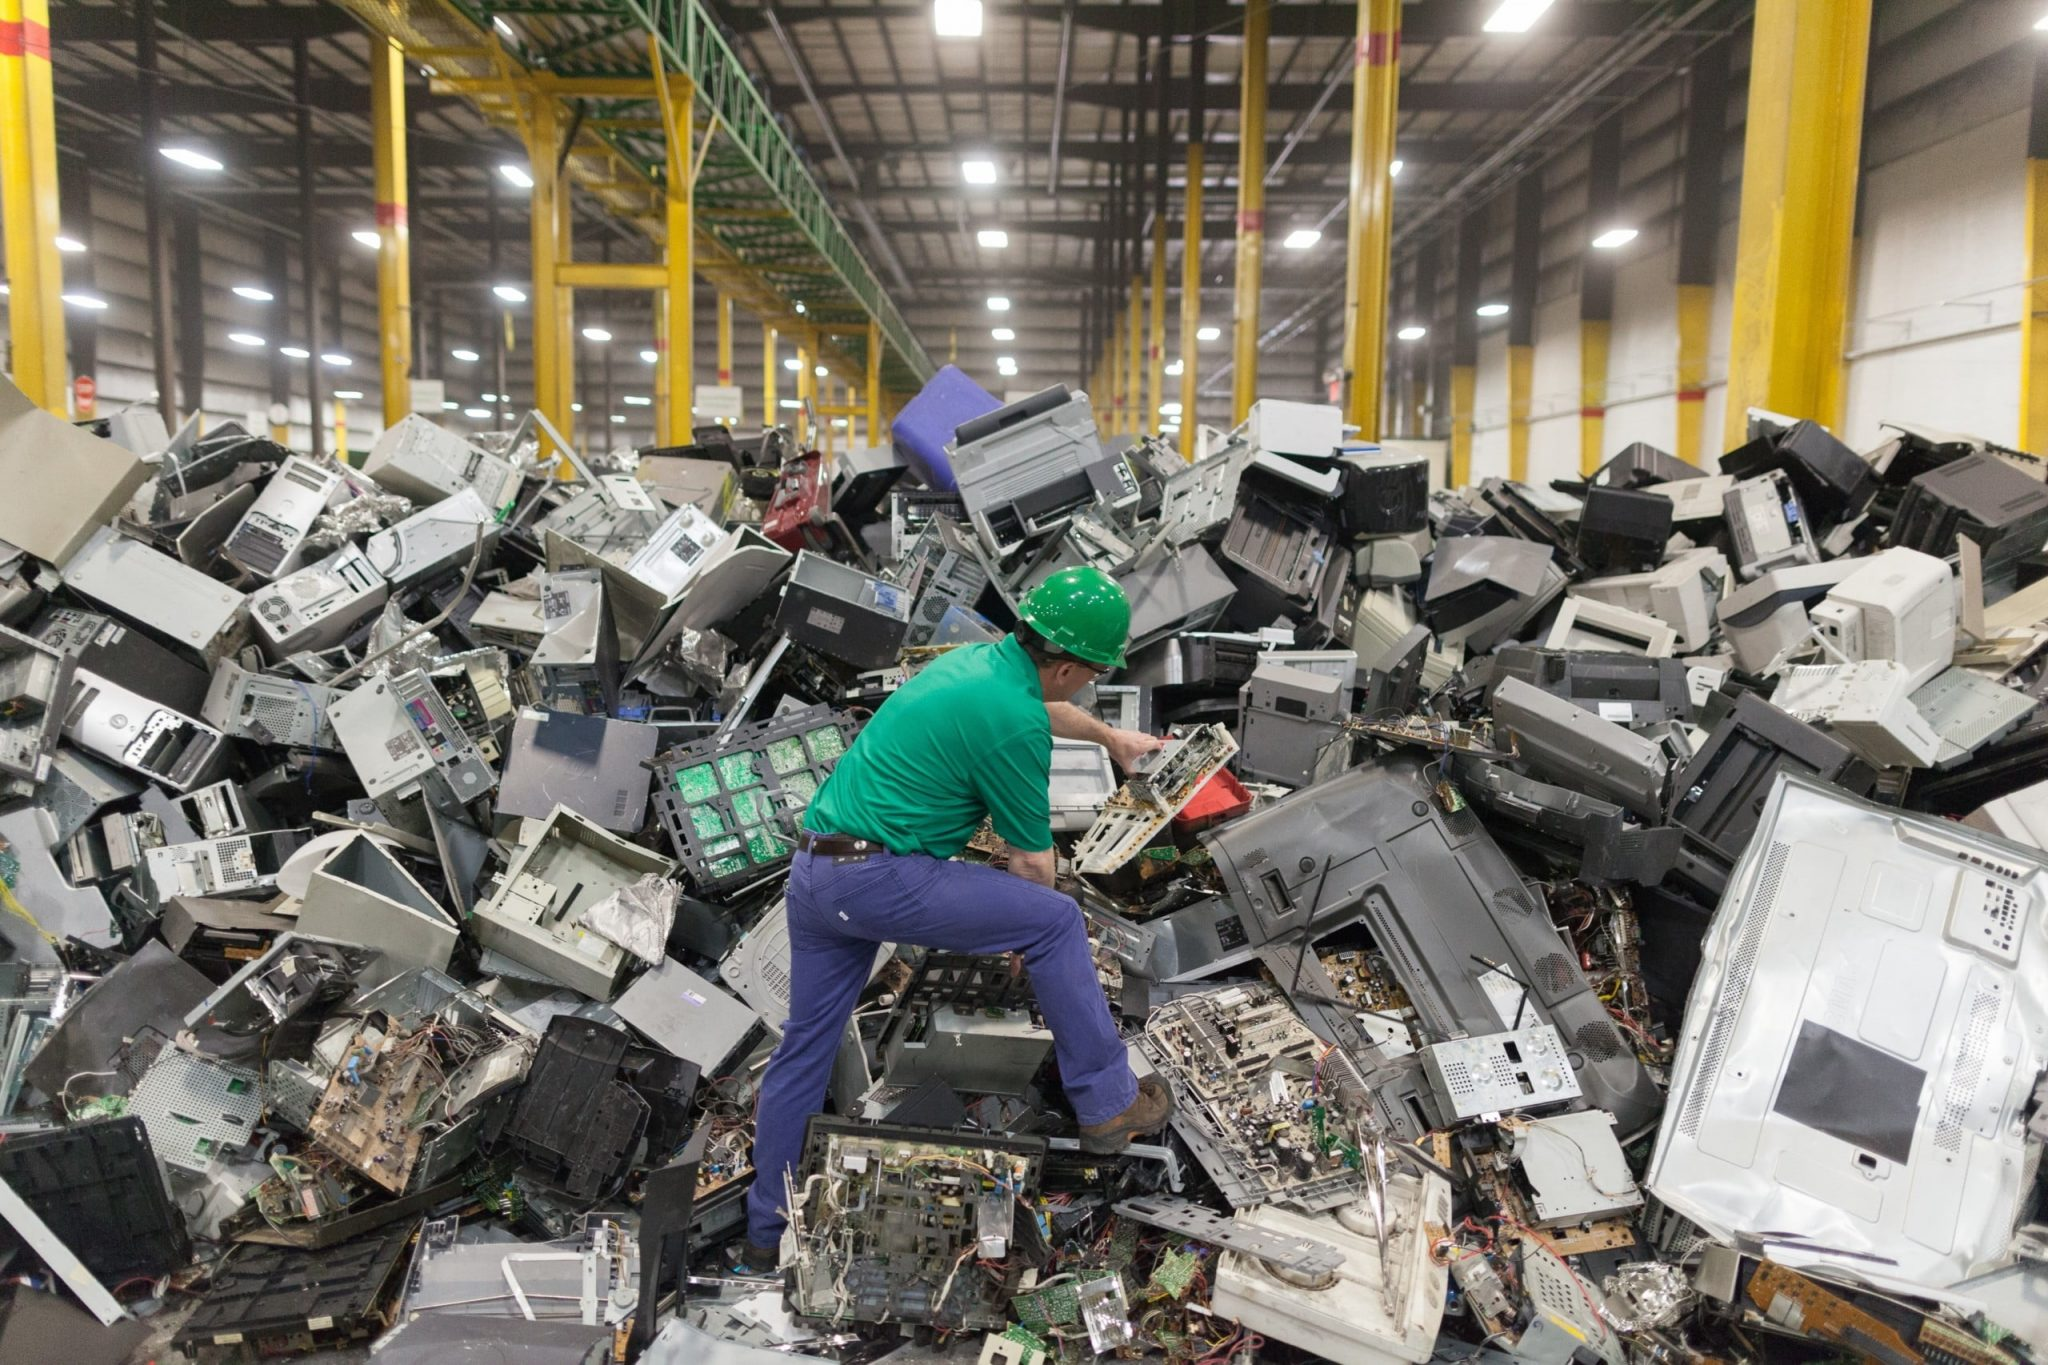 The Proper Way To Reuse And Recycle Electronic Parts